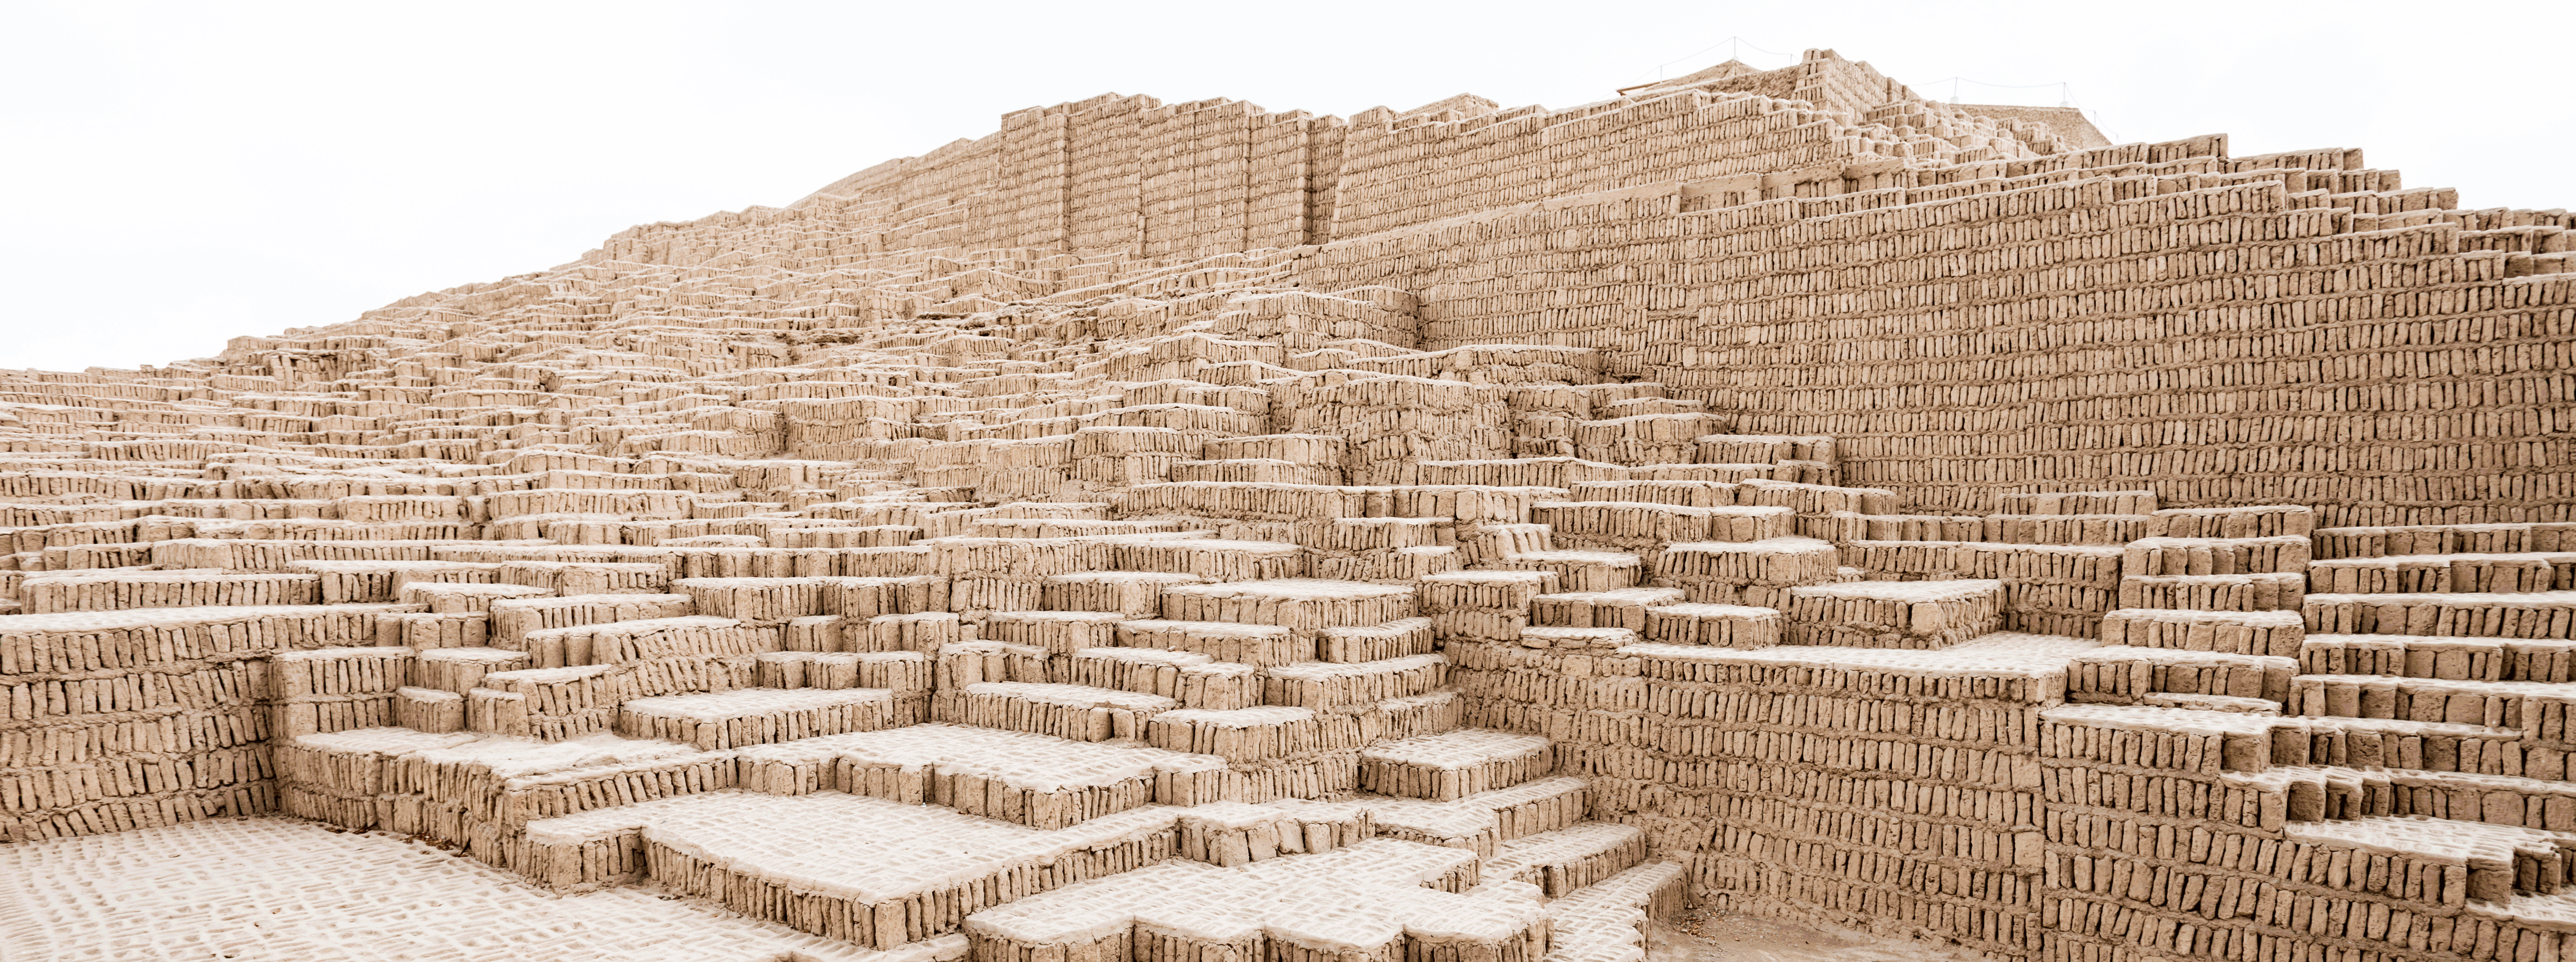 /resource/Images/southamerica/peru/headerimage/Huaca-Pucllana-Lima.png